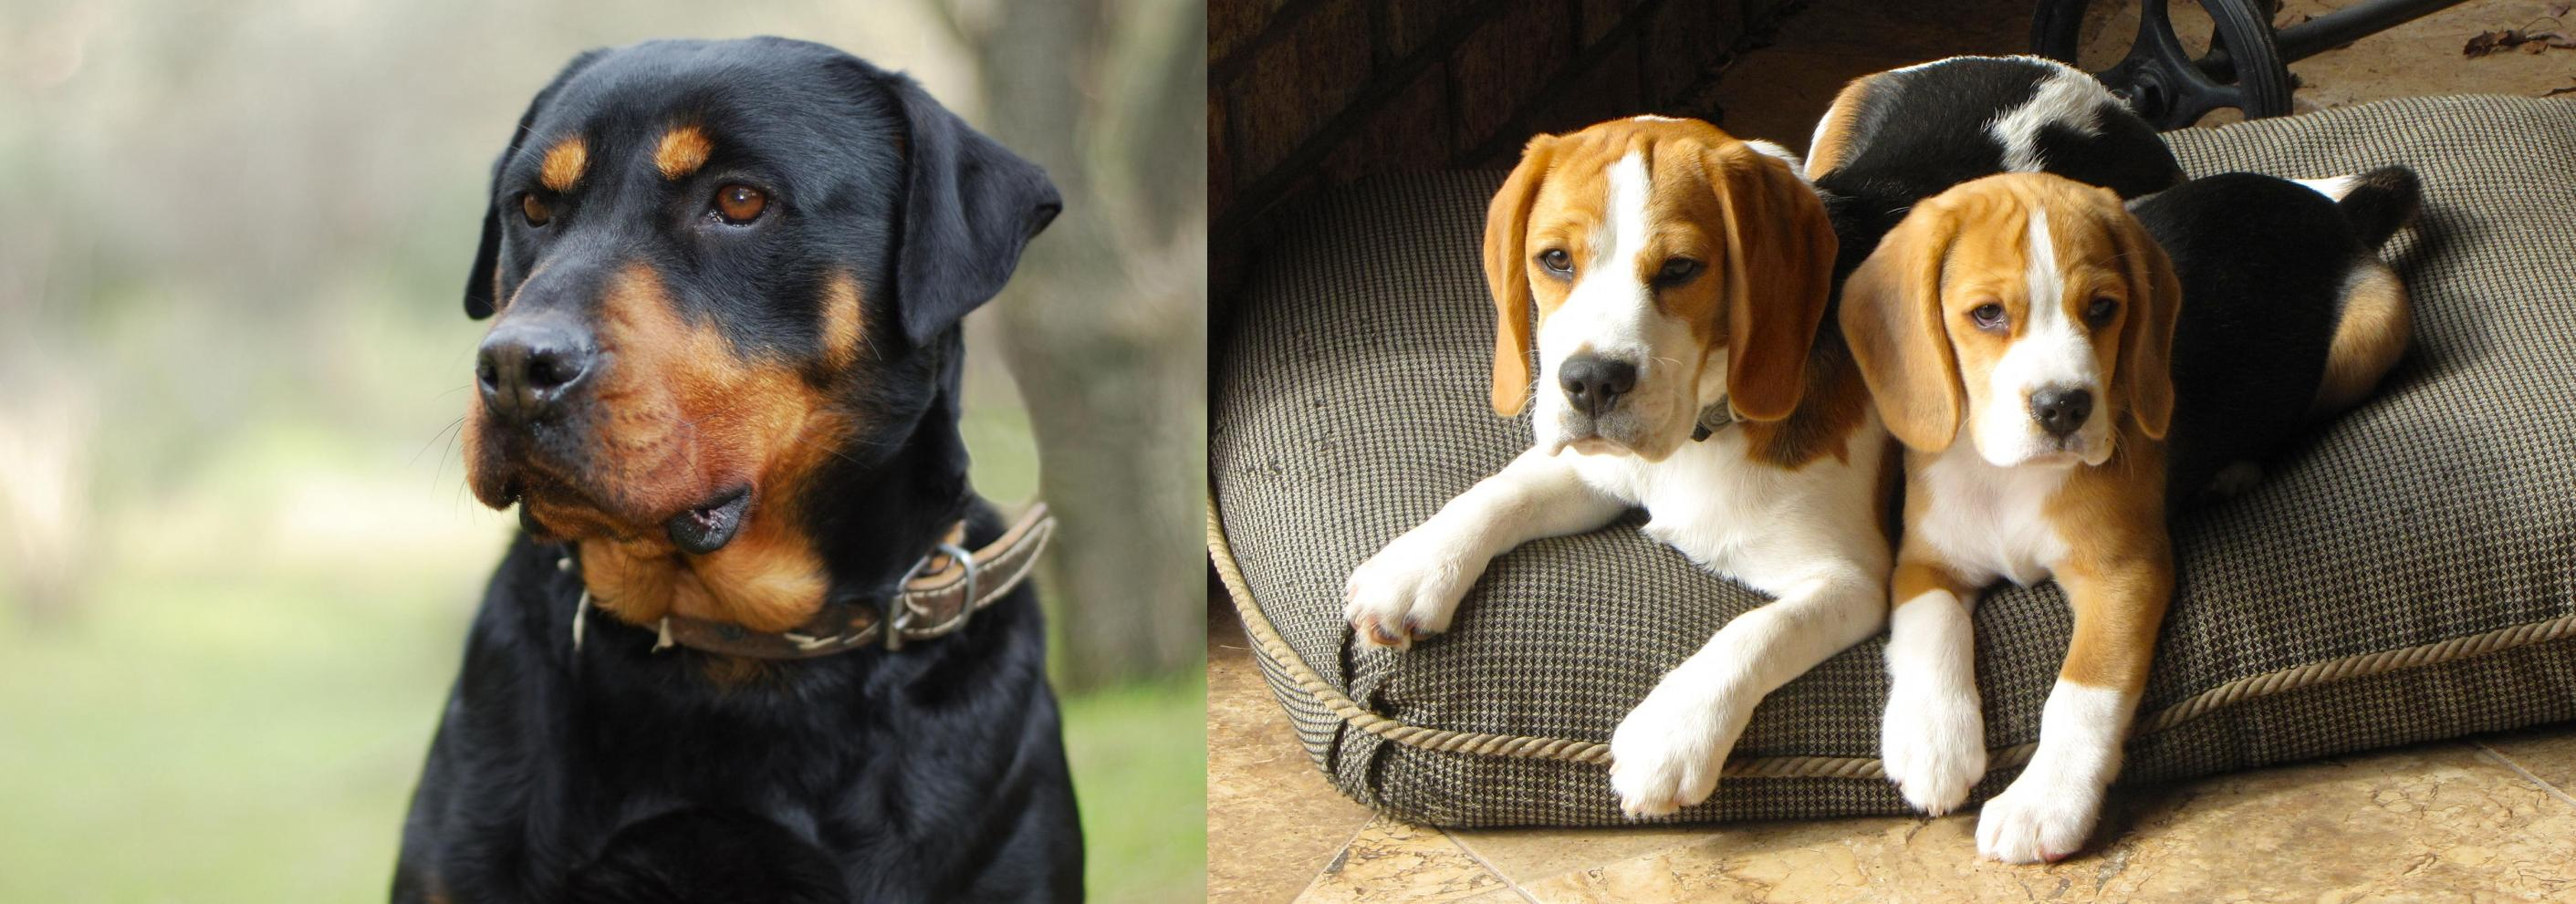 Rottweiler vs Beagle - Breed Comparison | MyDogBreeds